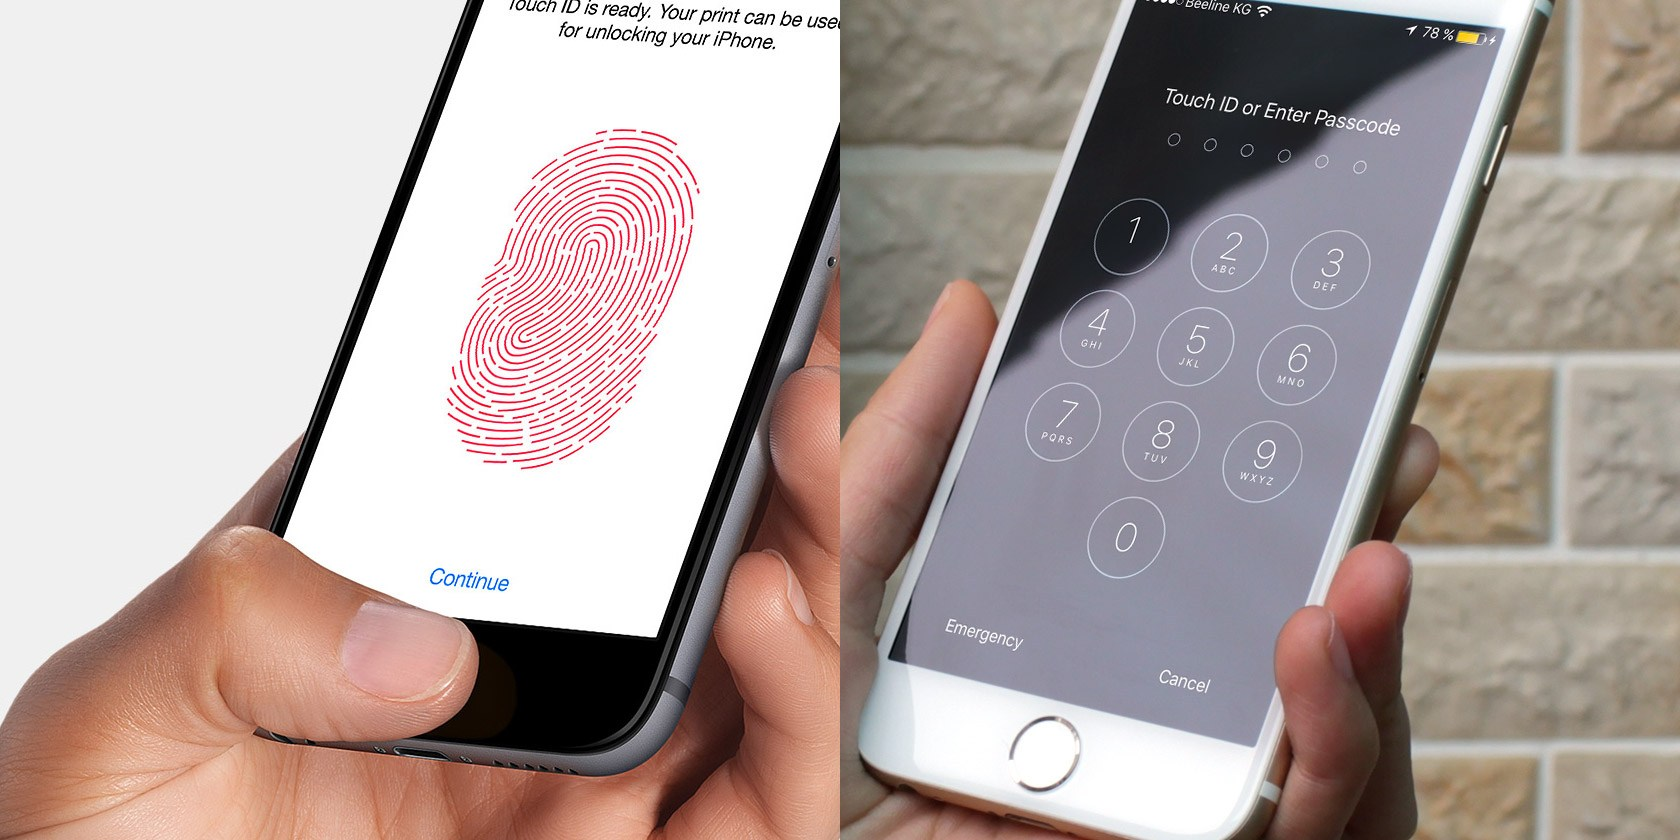 Should You Use a Fingerprint or a PIN to Lock Your Phone?